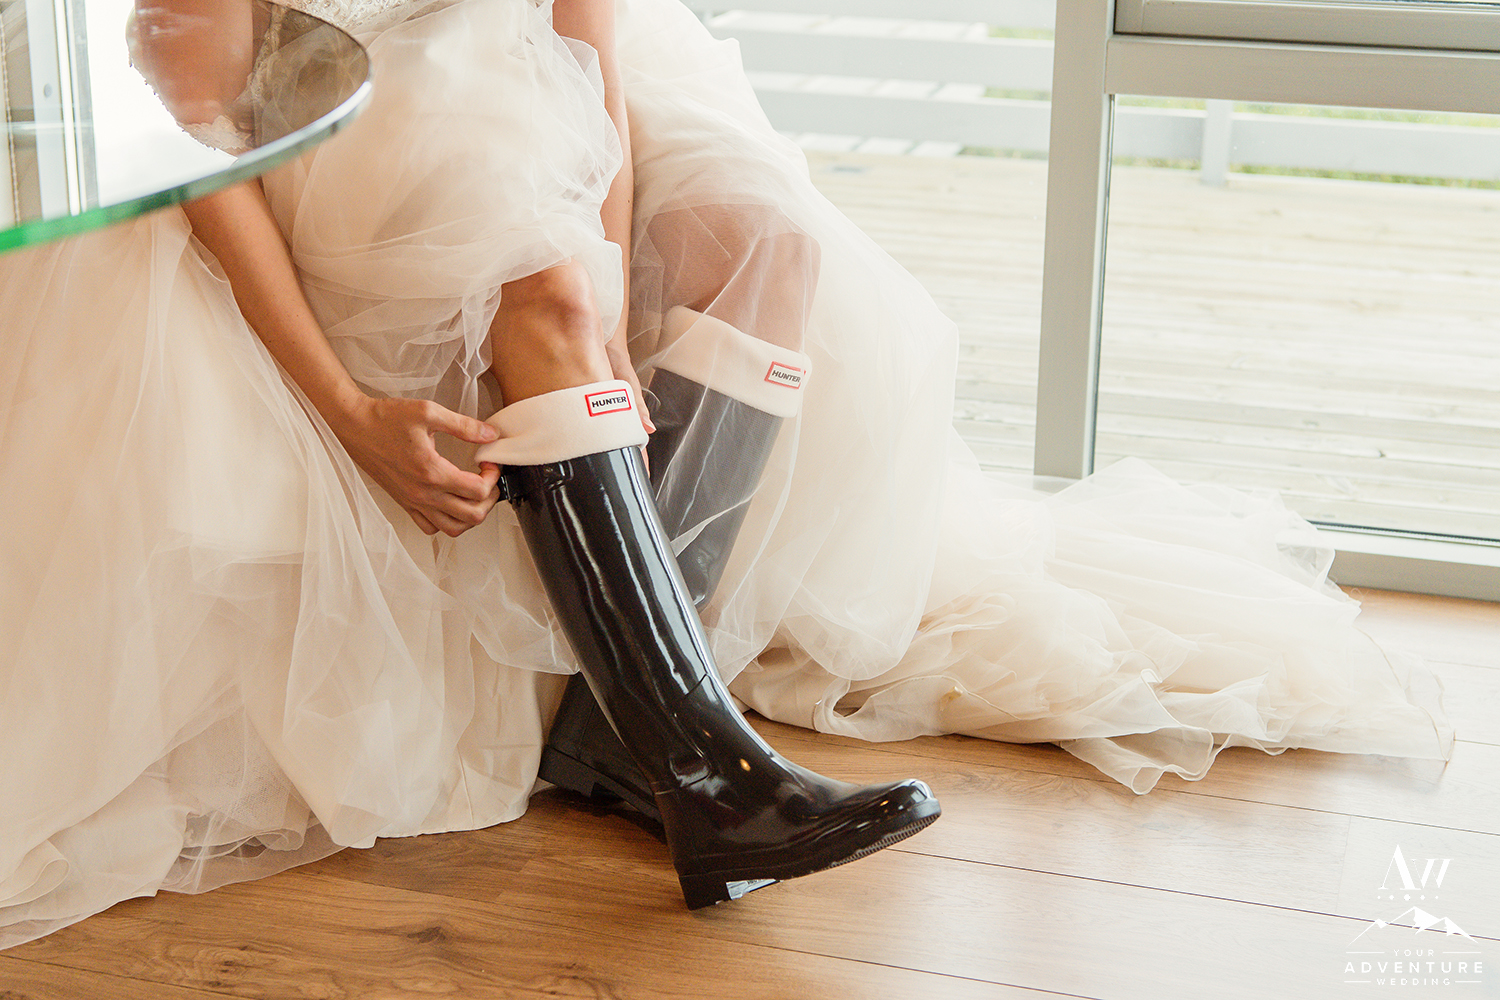 iceland-wedding-shoes-boots-iceland-wedding-planner